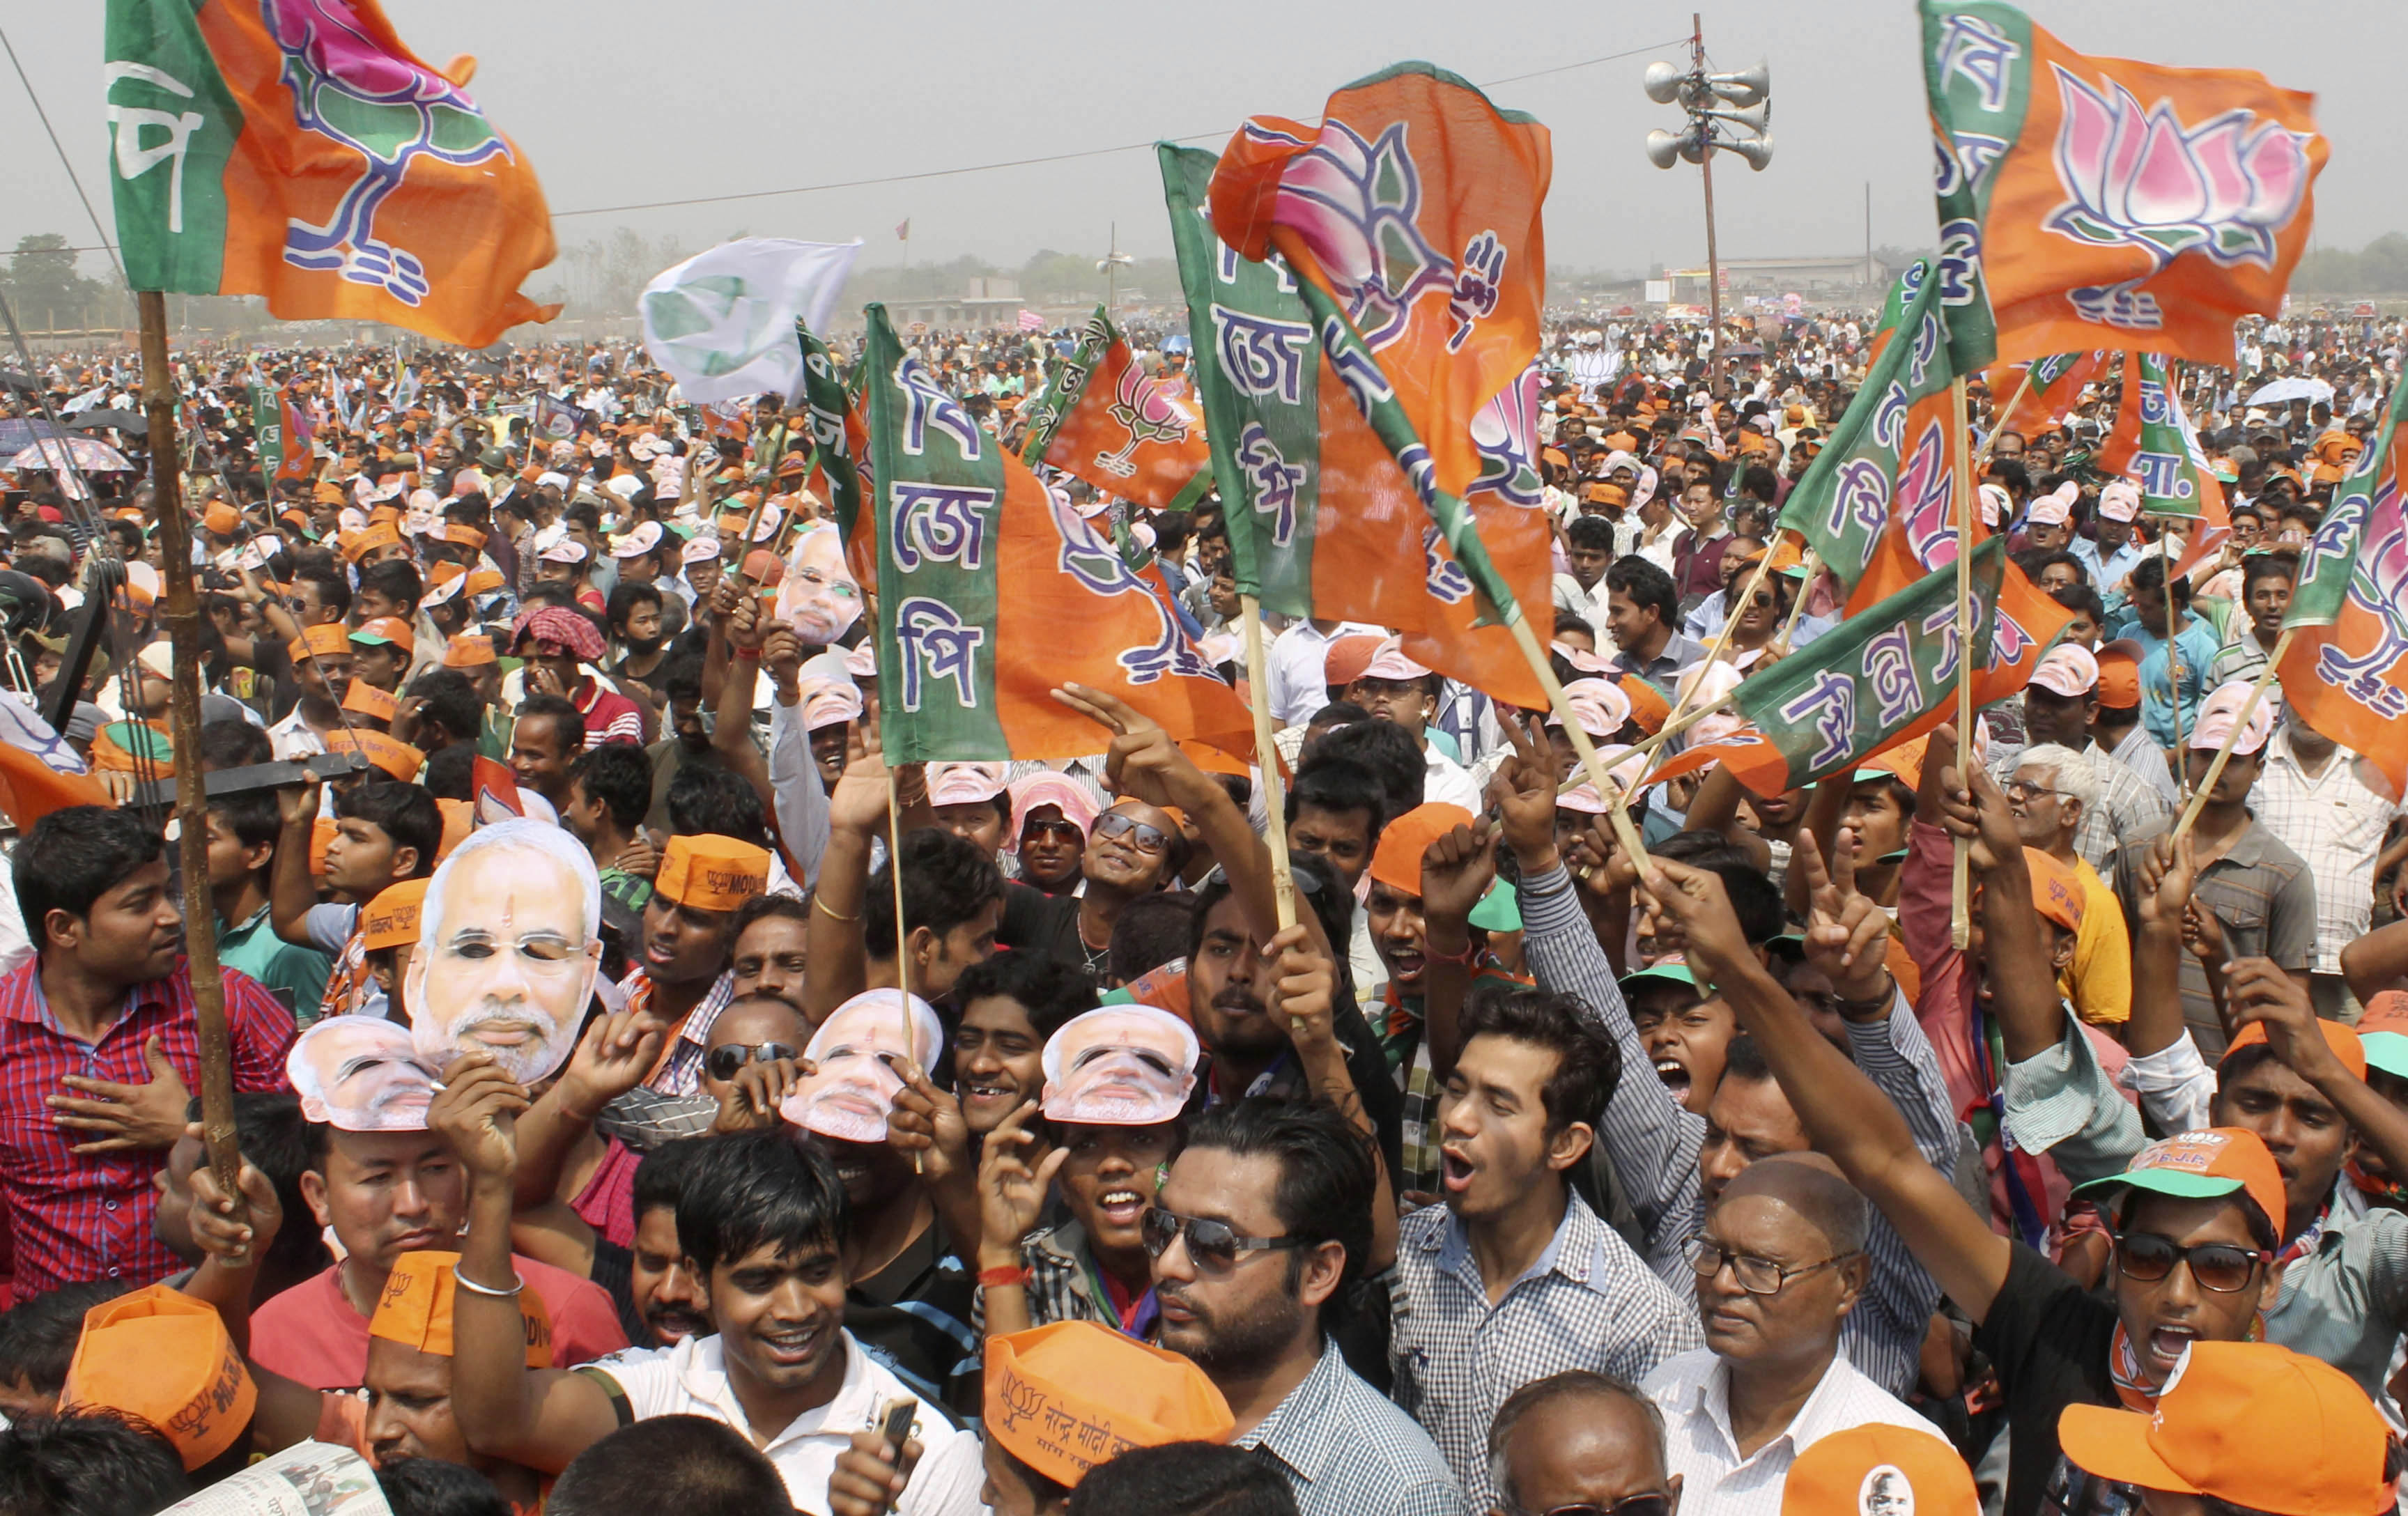 A rally for BJP Prime Ministerial candidate Narendra Modi in Siliguri, Darjeeling, on April 10, 2014. Voter mobilization, campaigning and advertising costs have made this the most expensive Indian poll ever